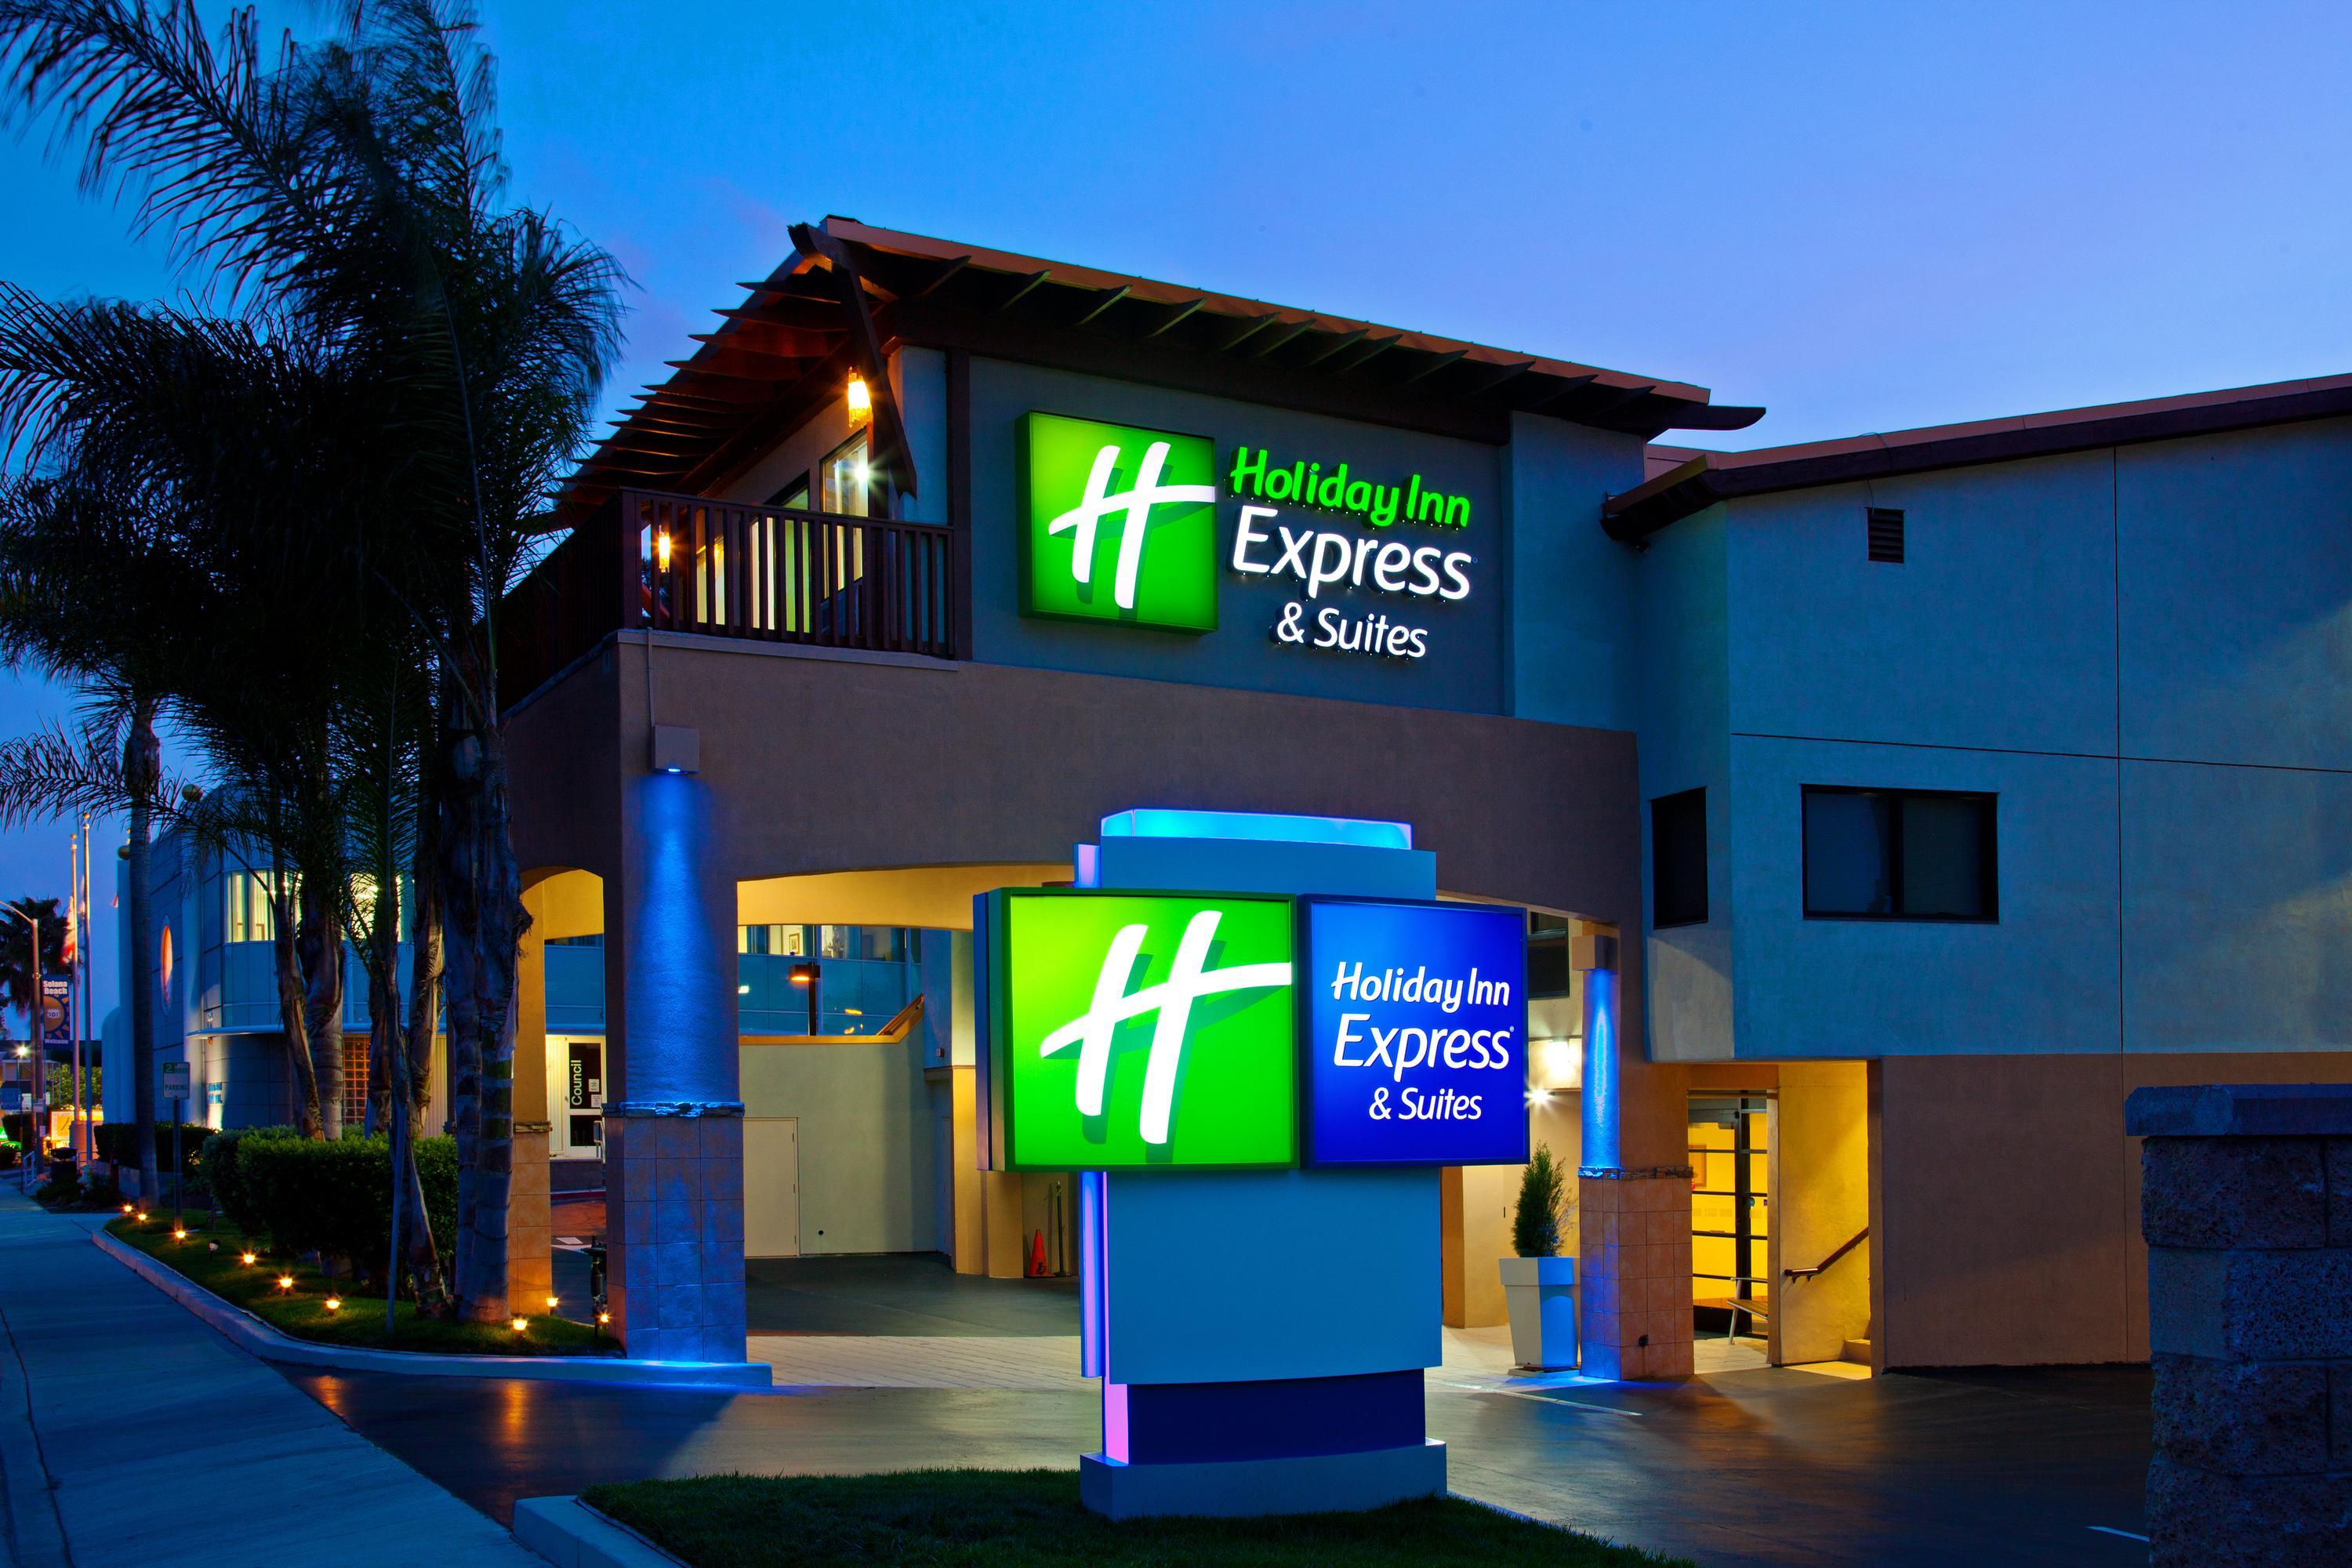 Holiday Inn Express & Suites Solana Beach-Del Mar